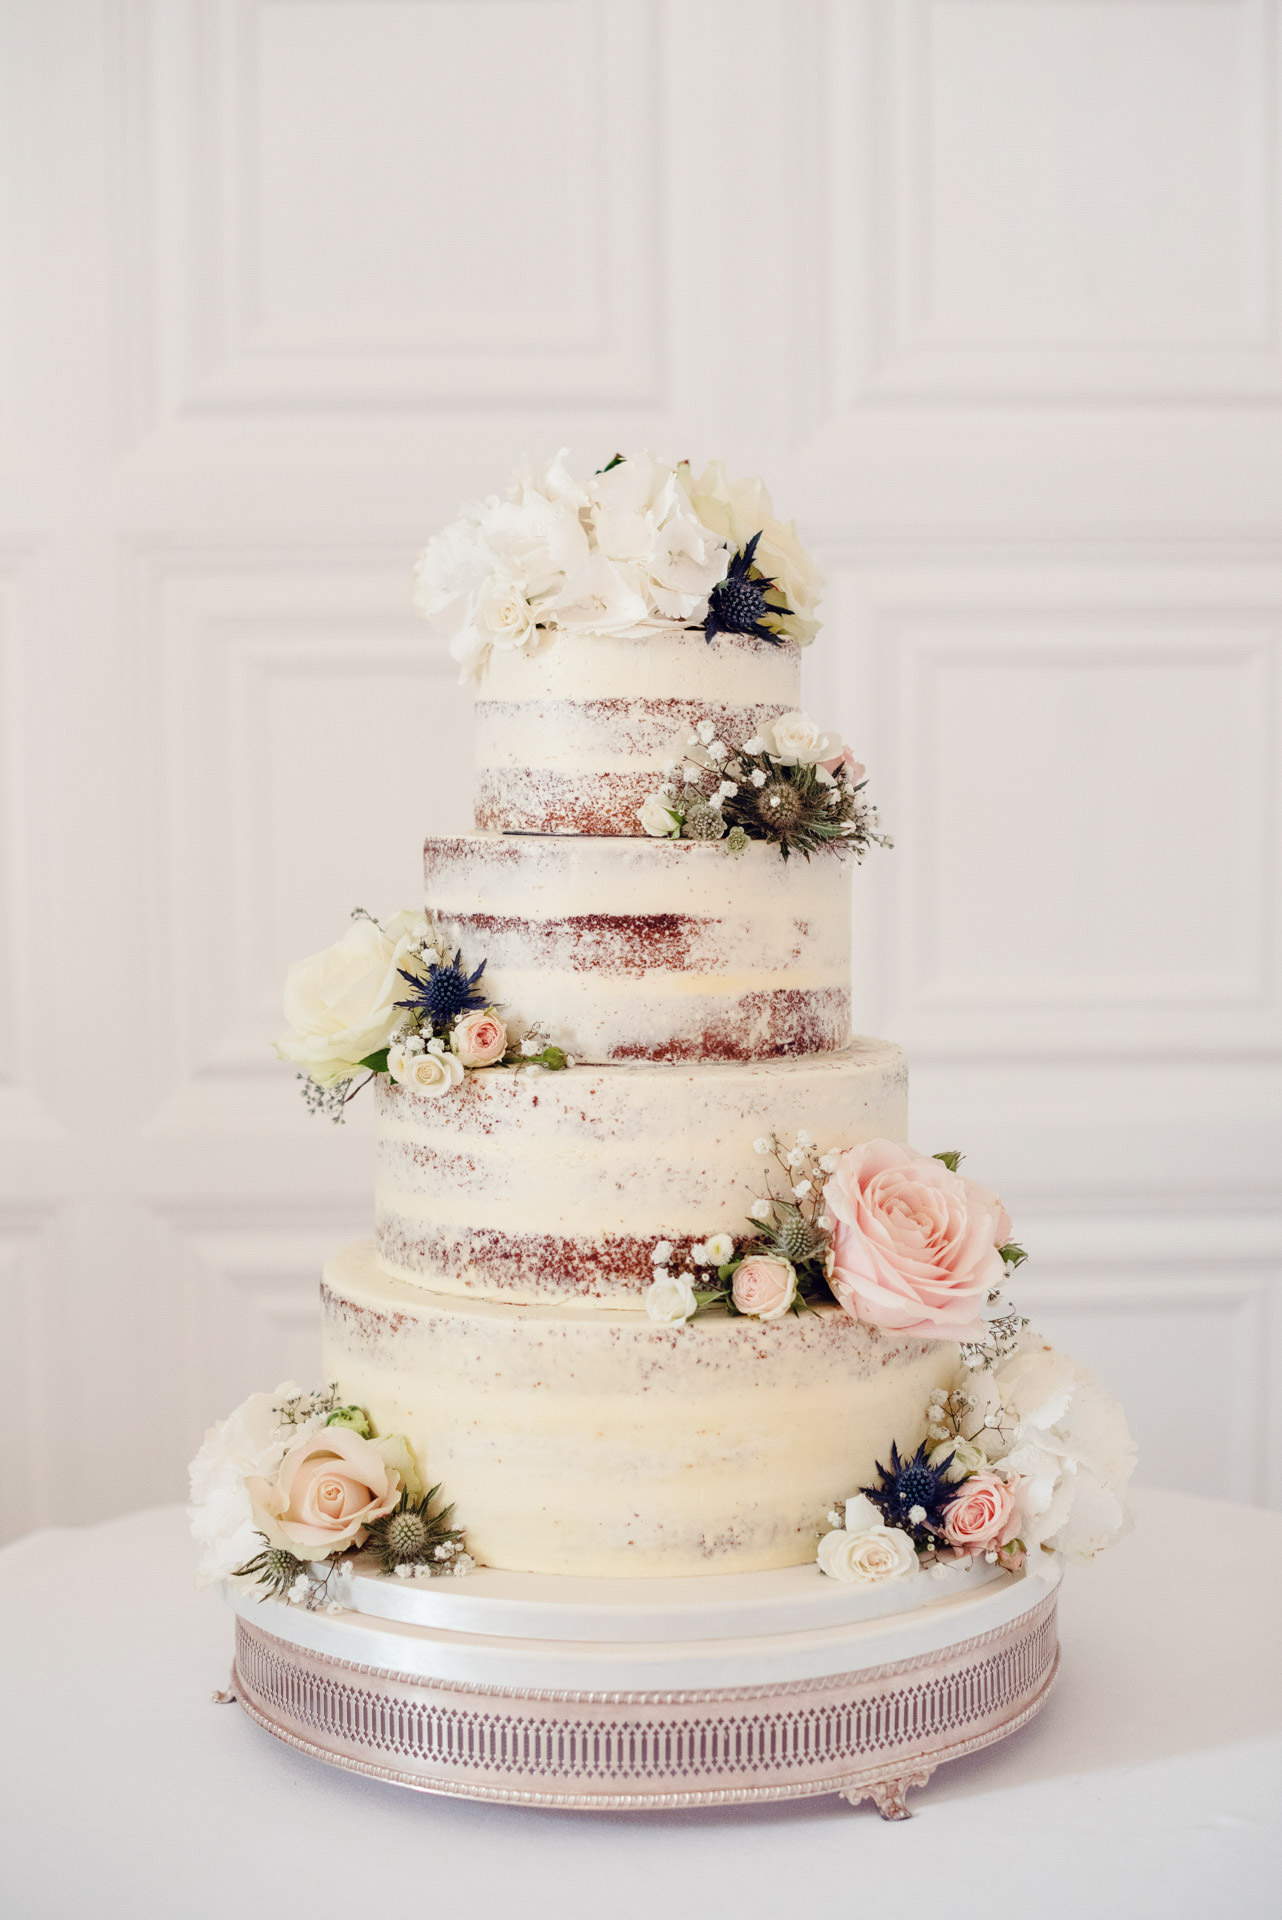 Semi naked cake, with floral clusters